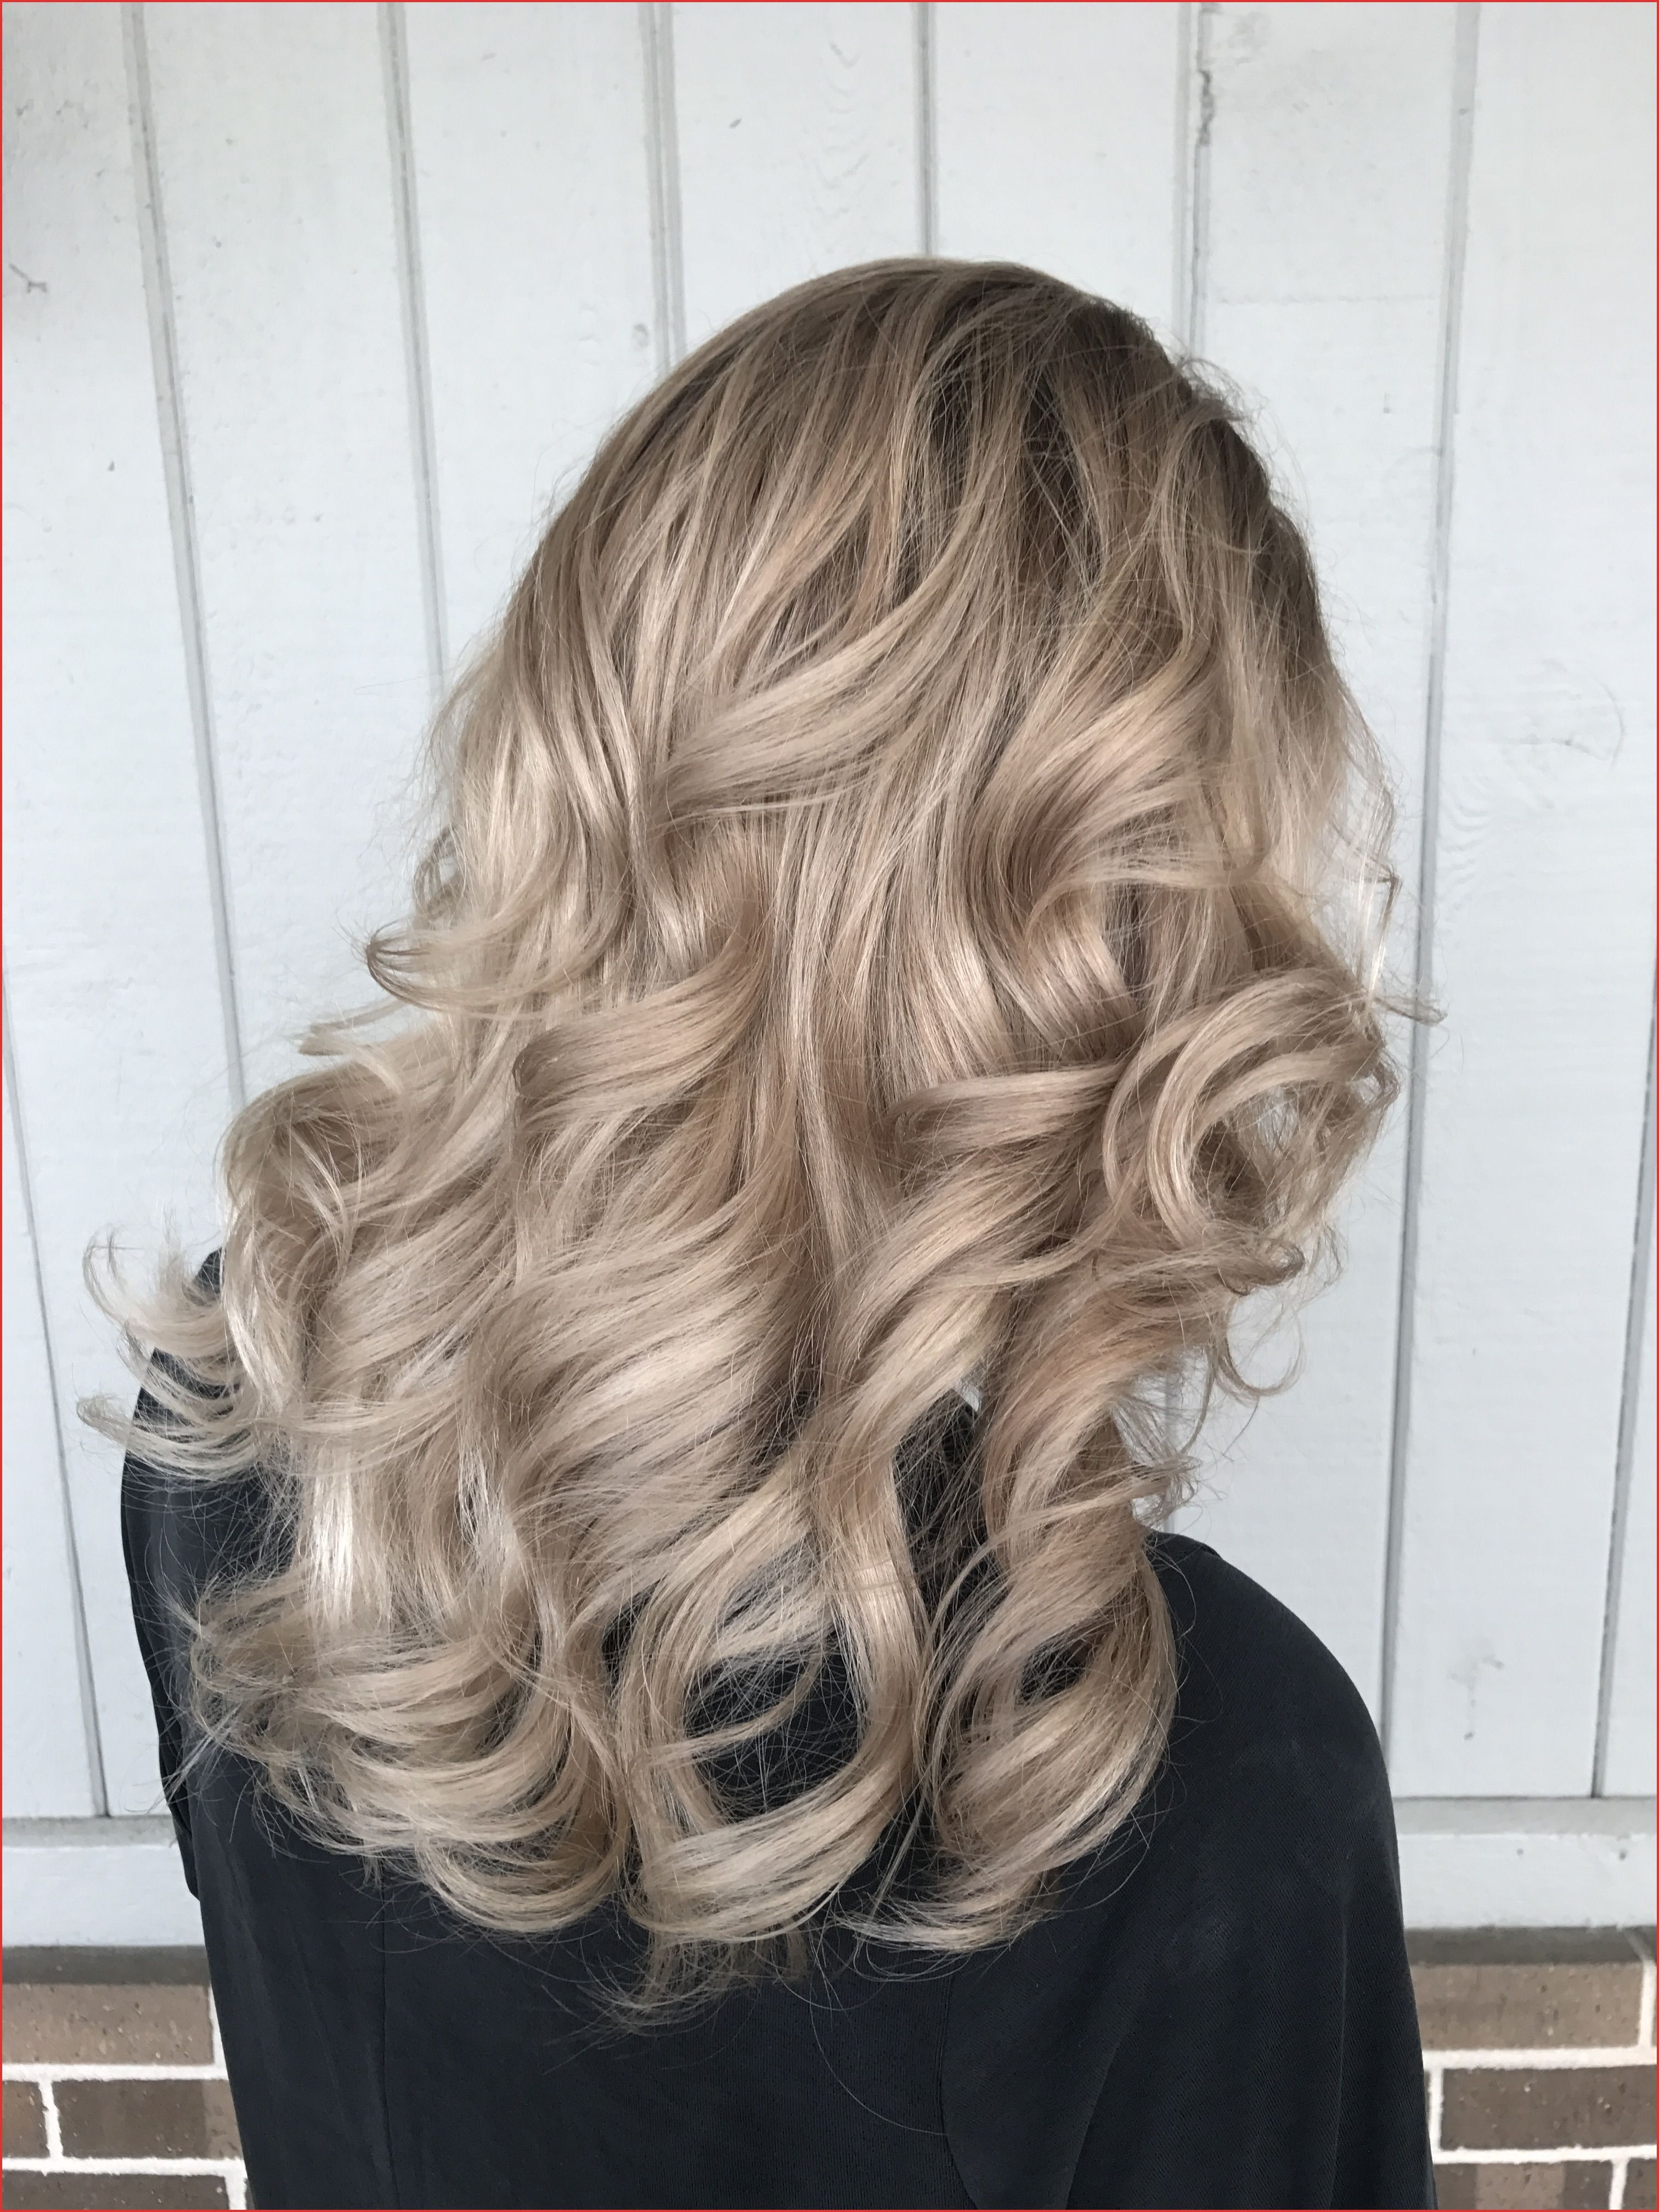 Check Out Our , Pin by Cara Brown On Hair Pinterest, Champagne Blonde …, Blonde Shades Hairs Pinterest. #champagneblondehair